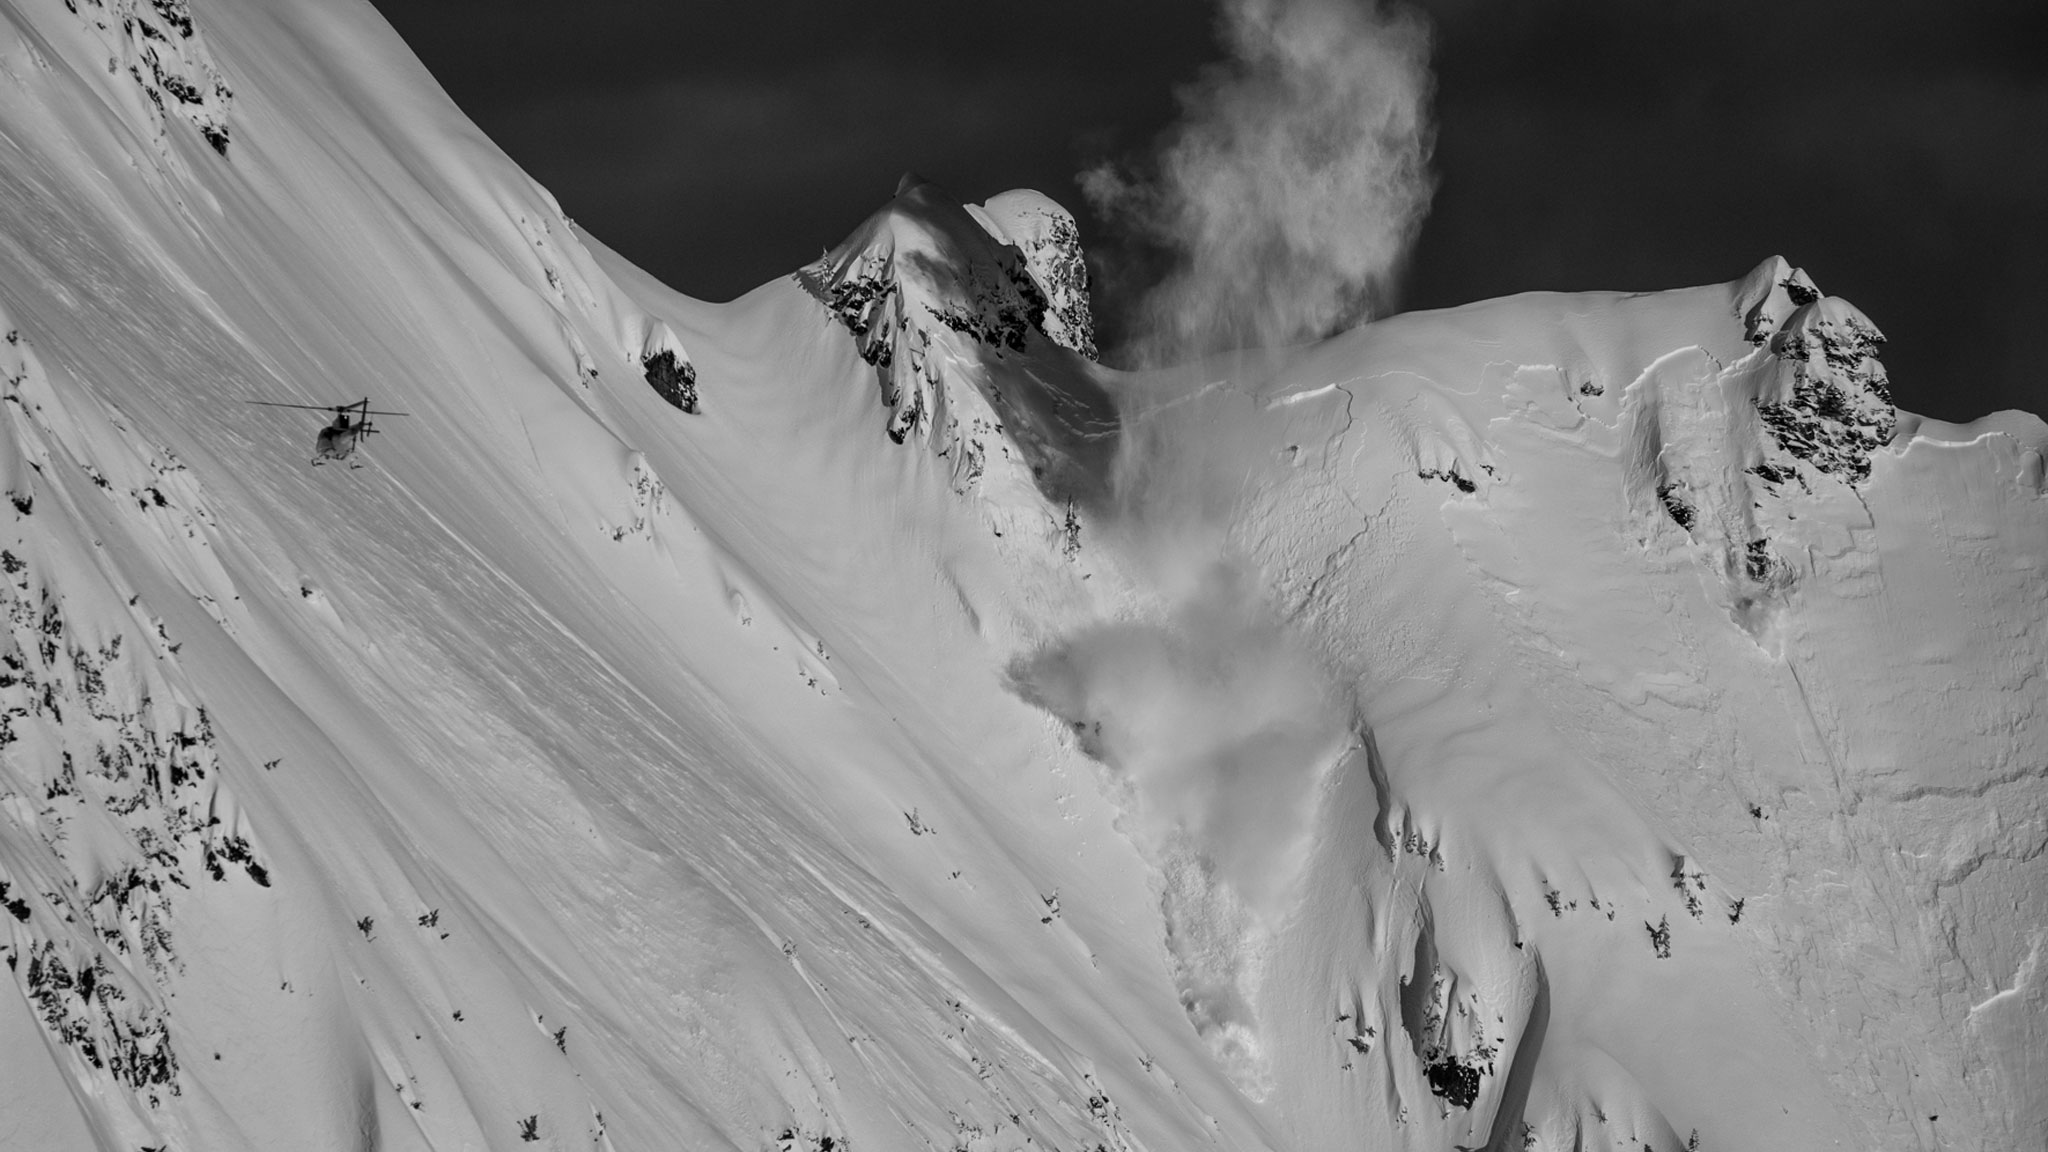 Next winter's Freeride World Tour will see no contests in Canada or the Lower 48.